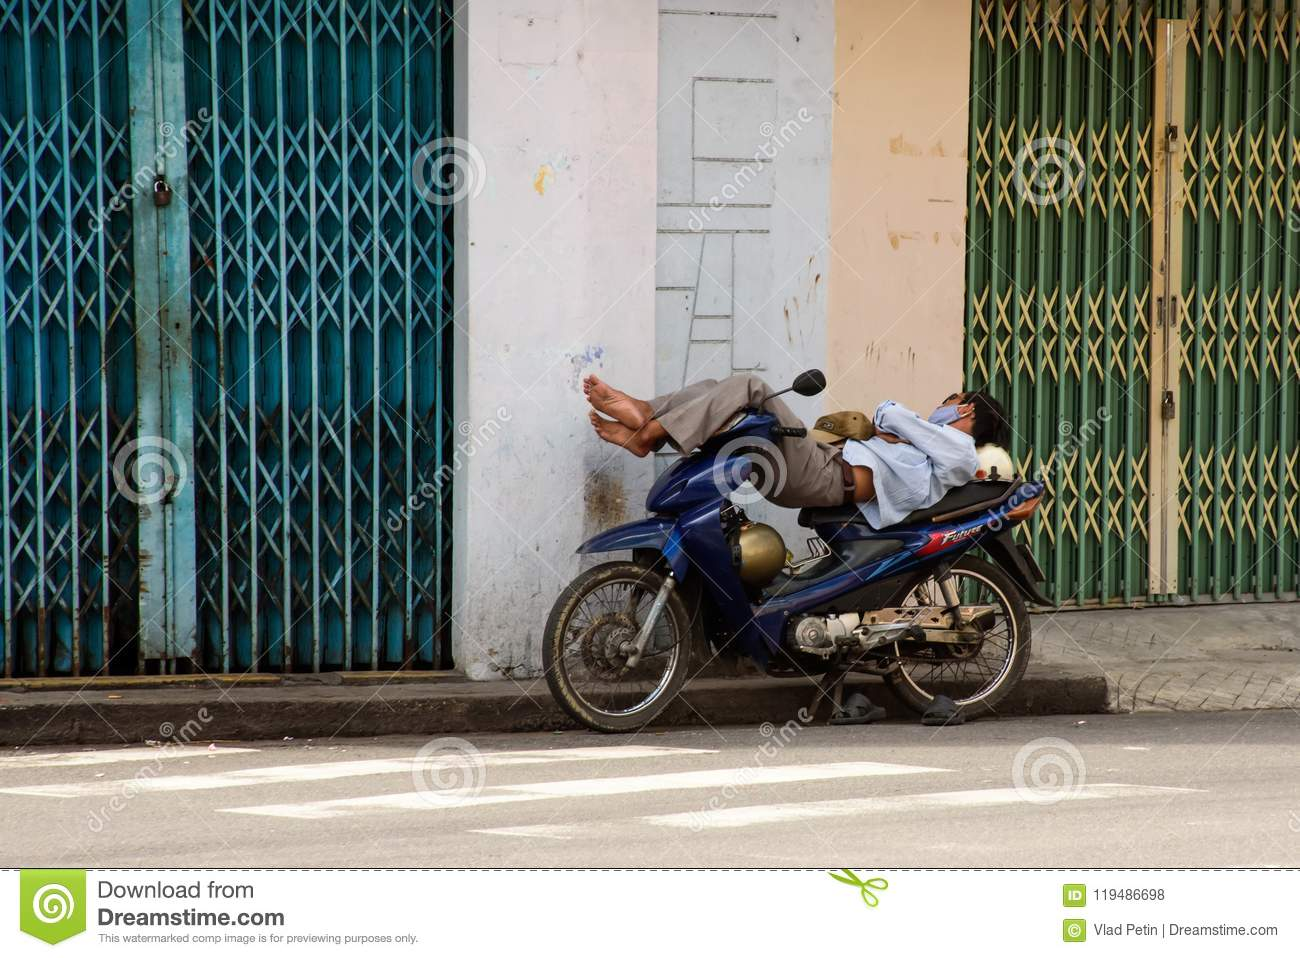 Asian motorcycle taxi